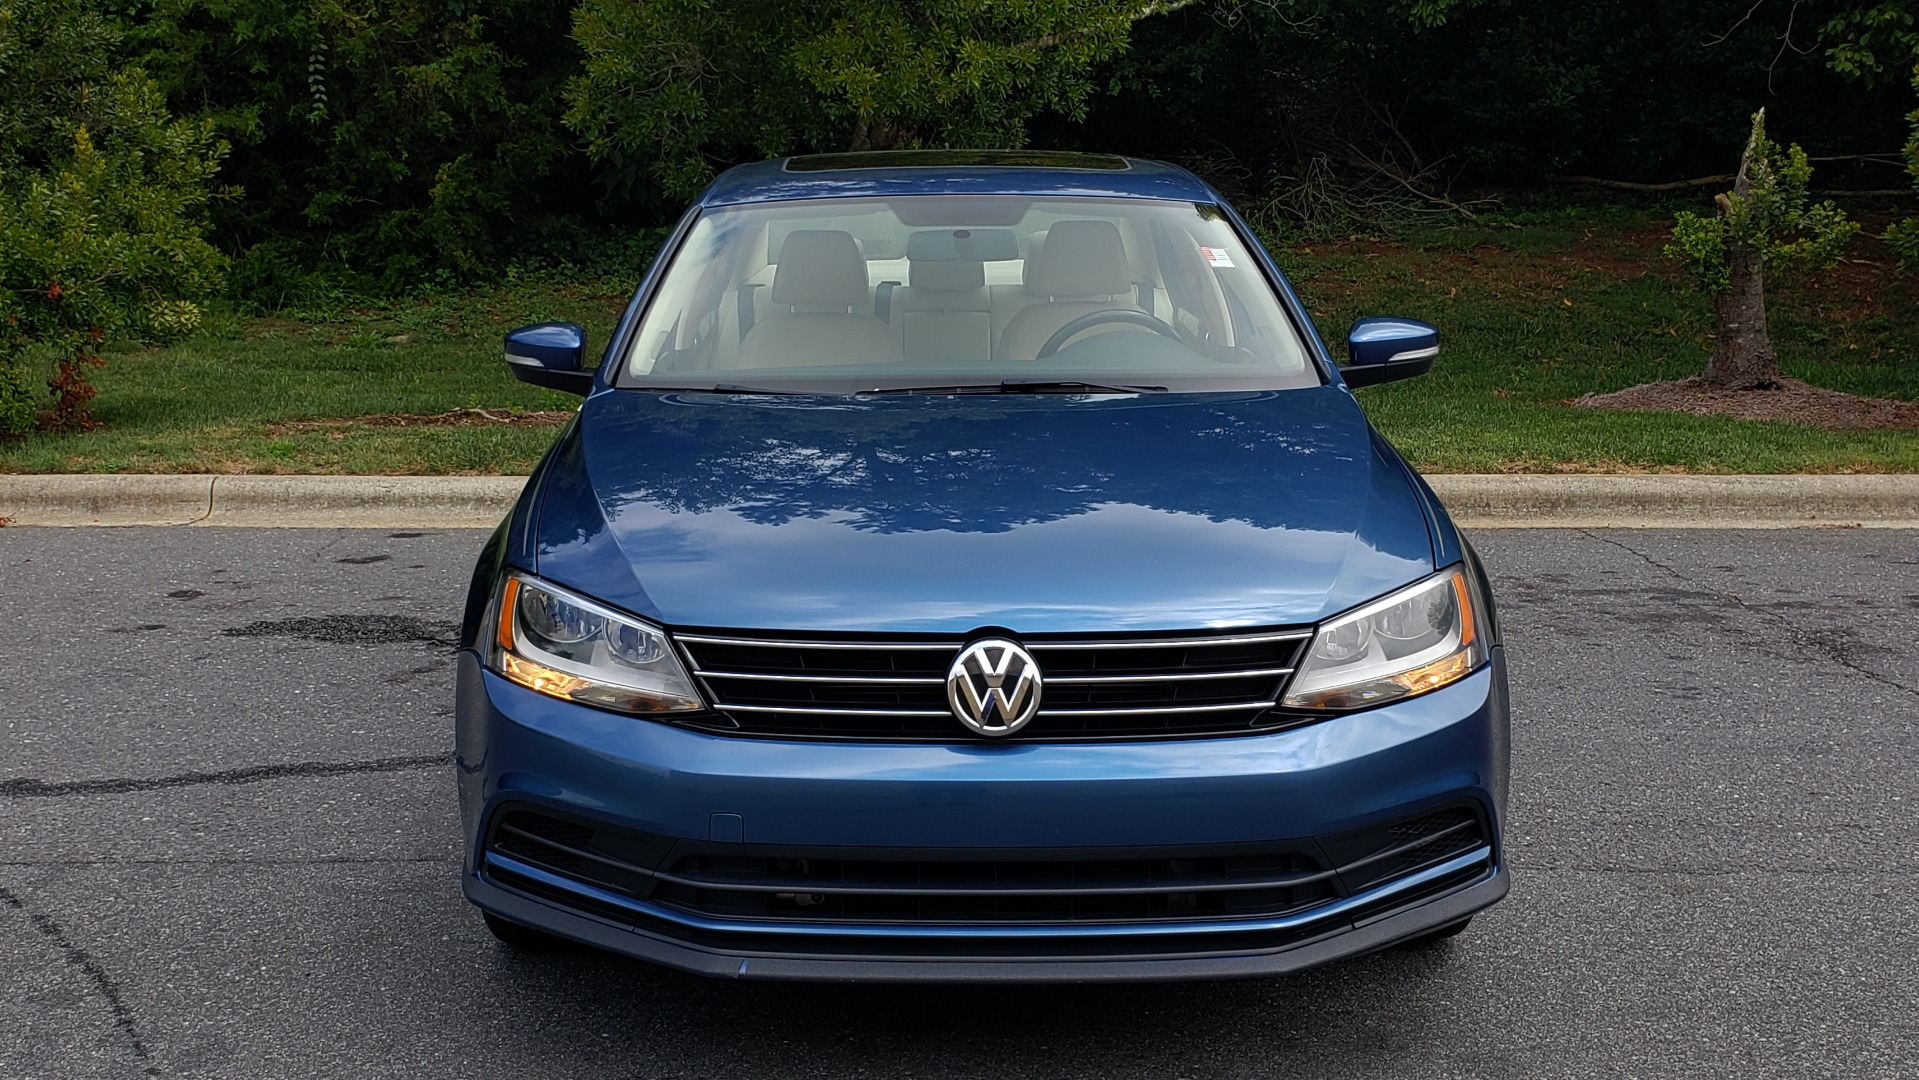 Used 2016 Volkswagen JETTA SEDAN 1.4T SE W/ CONNECTIVITY / 6-SPD AUTO / HTD STS / SUNROOF / REARVIEW for sale Sold at Formula Imports in Charlotte NC 28227 20